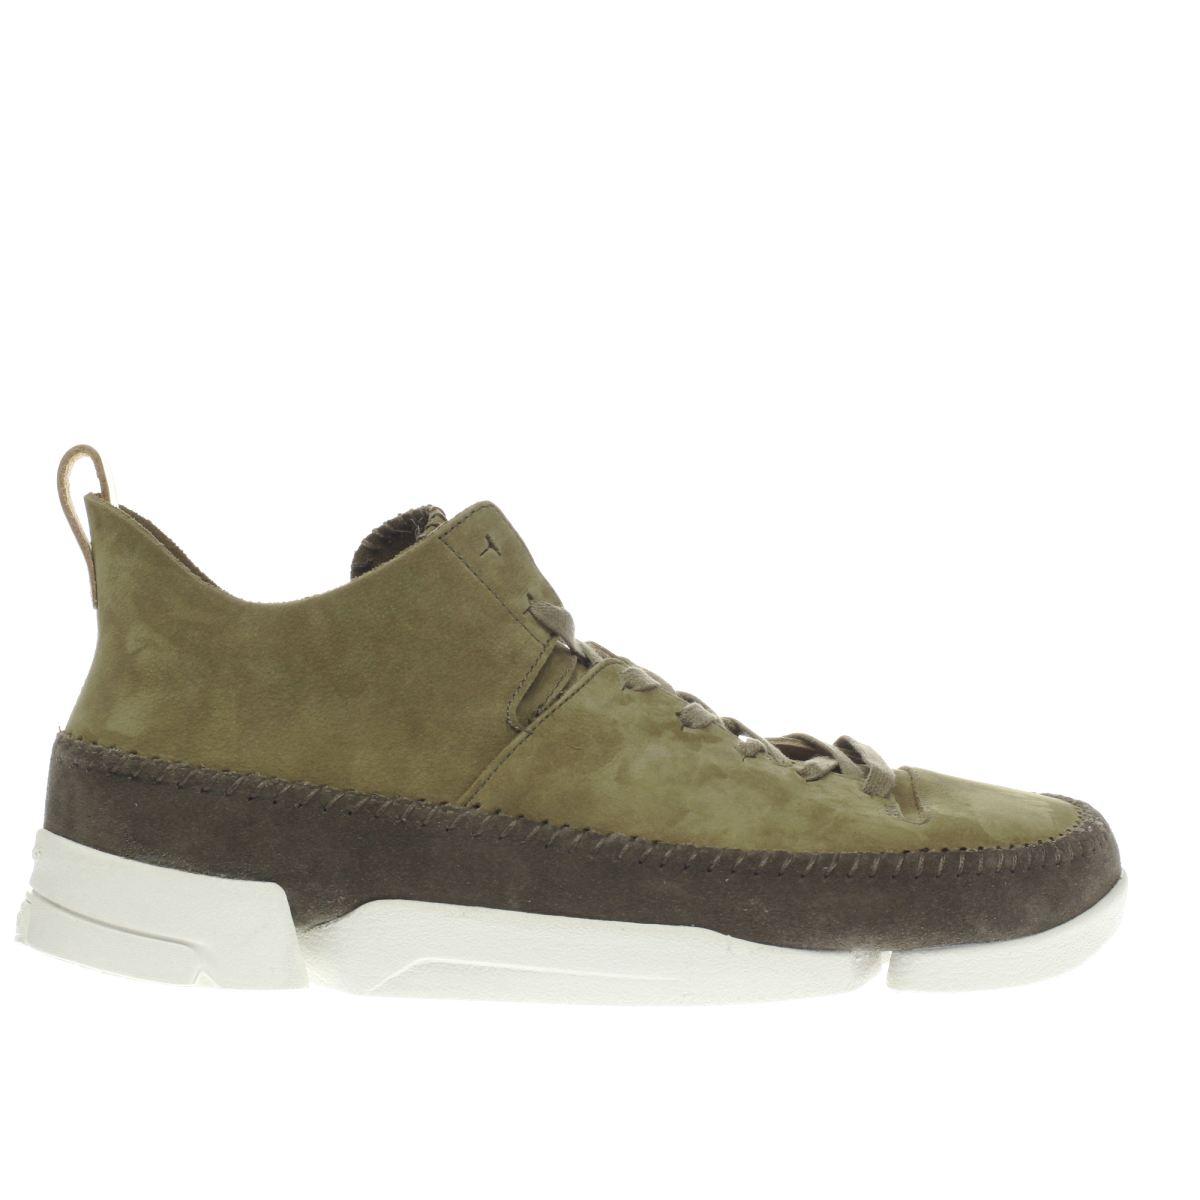 clarks originals khaki trigenic flex boots